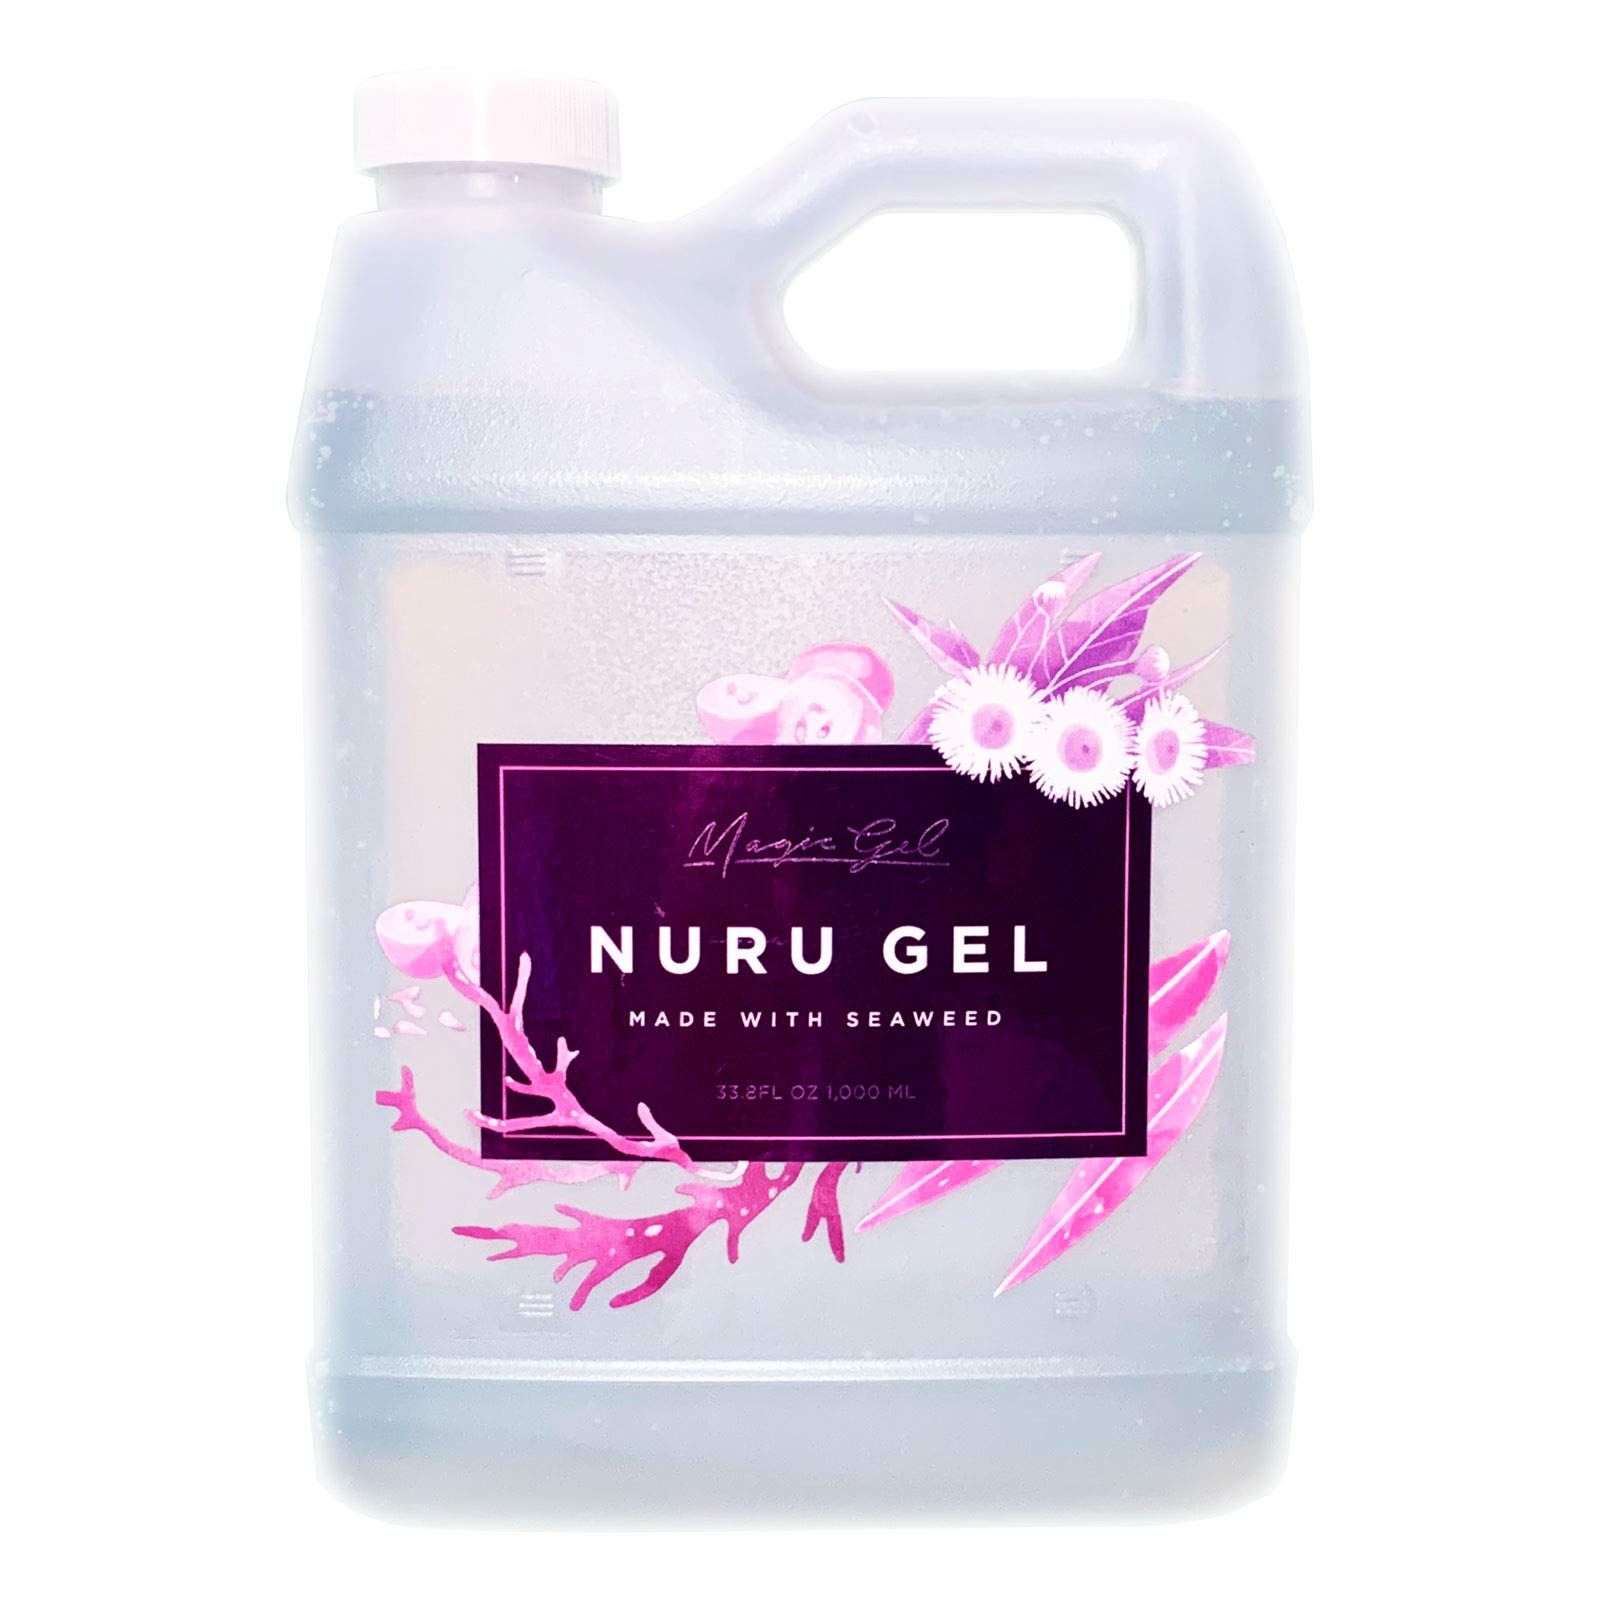 Magic Gel Nuru Massage Therapy Gel   Naturally Stain, Flavor and Fragrance Free   Ideal for Massage, Sore Muscles, Dry Skin   33.8 Oz